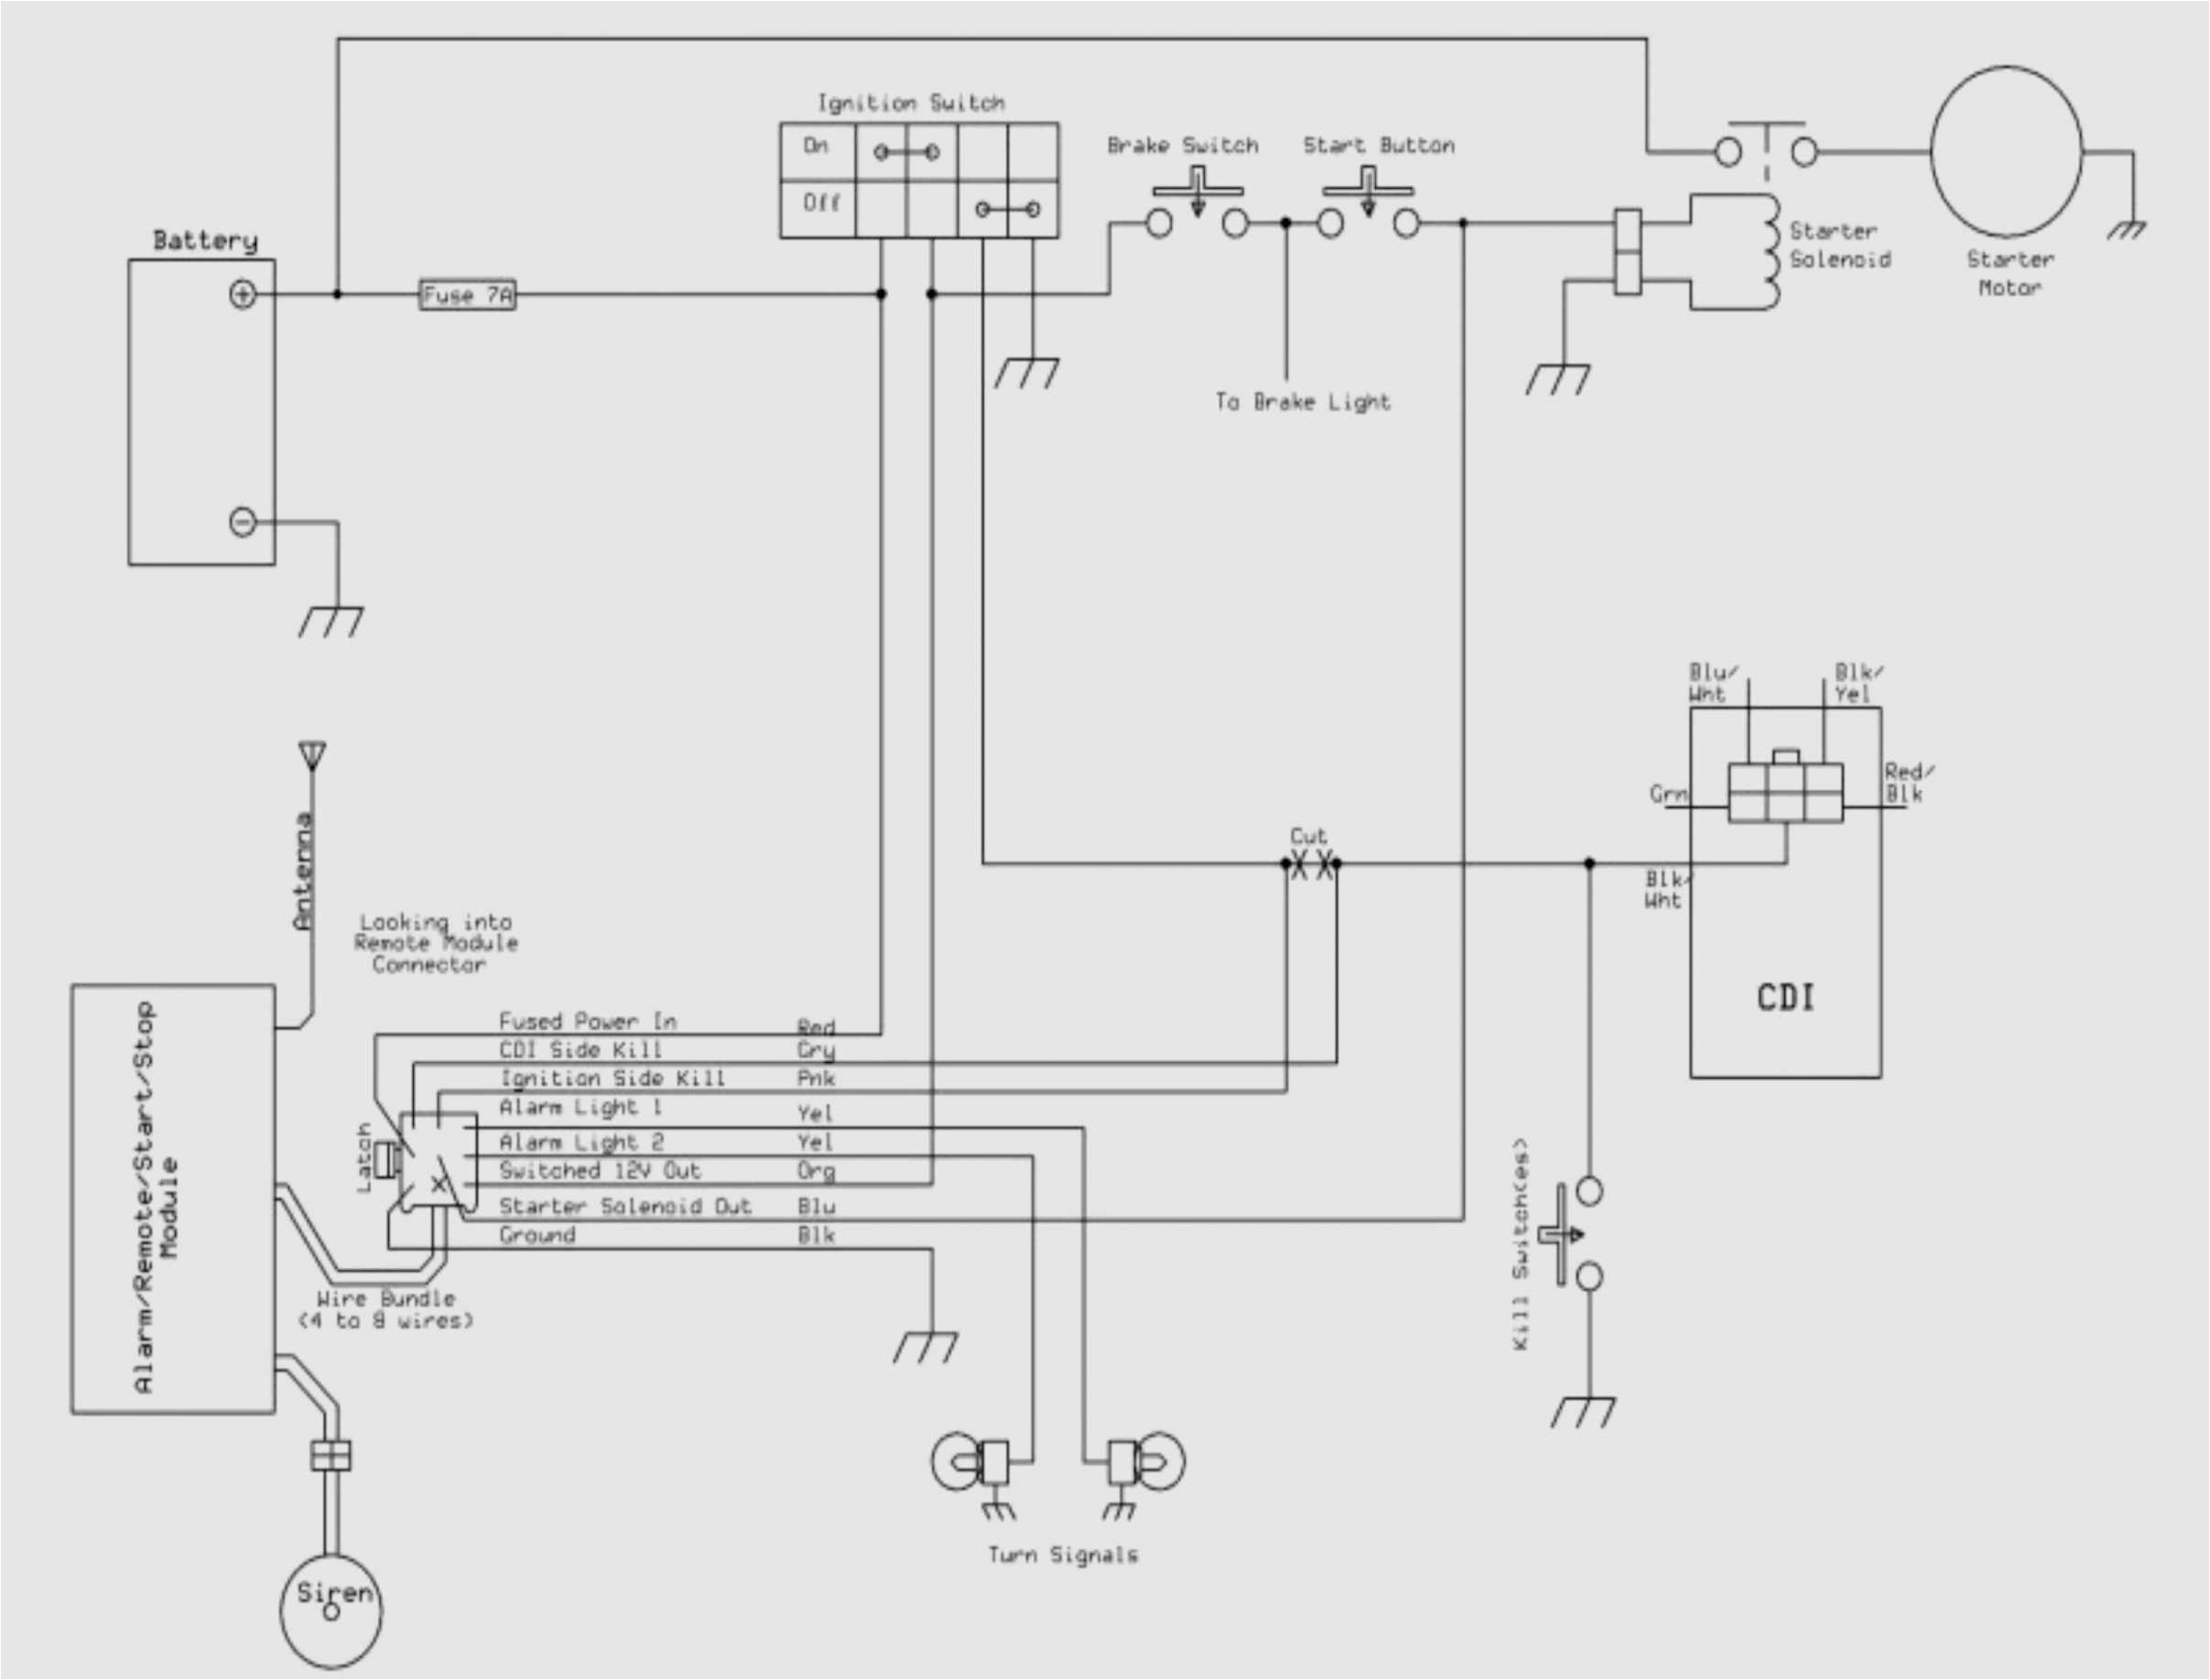 motorcycle cdi ignition wiring diagram dc 250 wiring diagram block and schematic diagrams e280a2 of motorcycle cdi ignition wiring diagram jpg